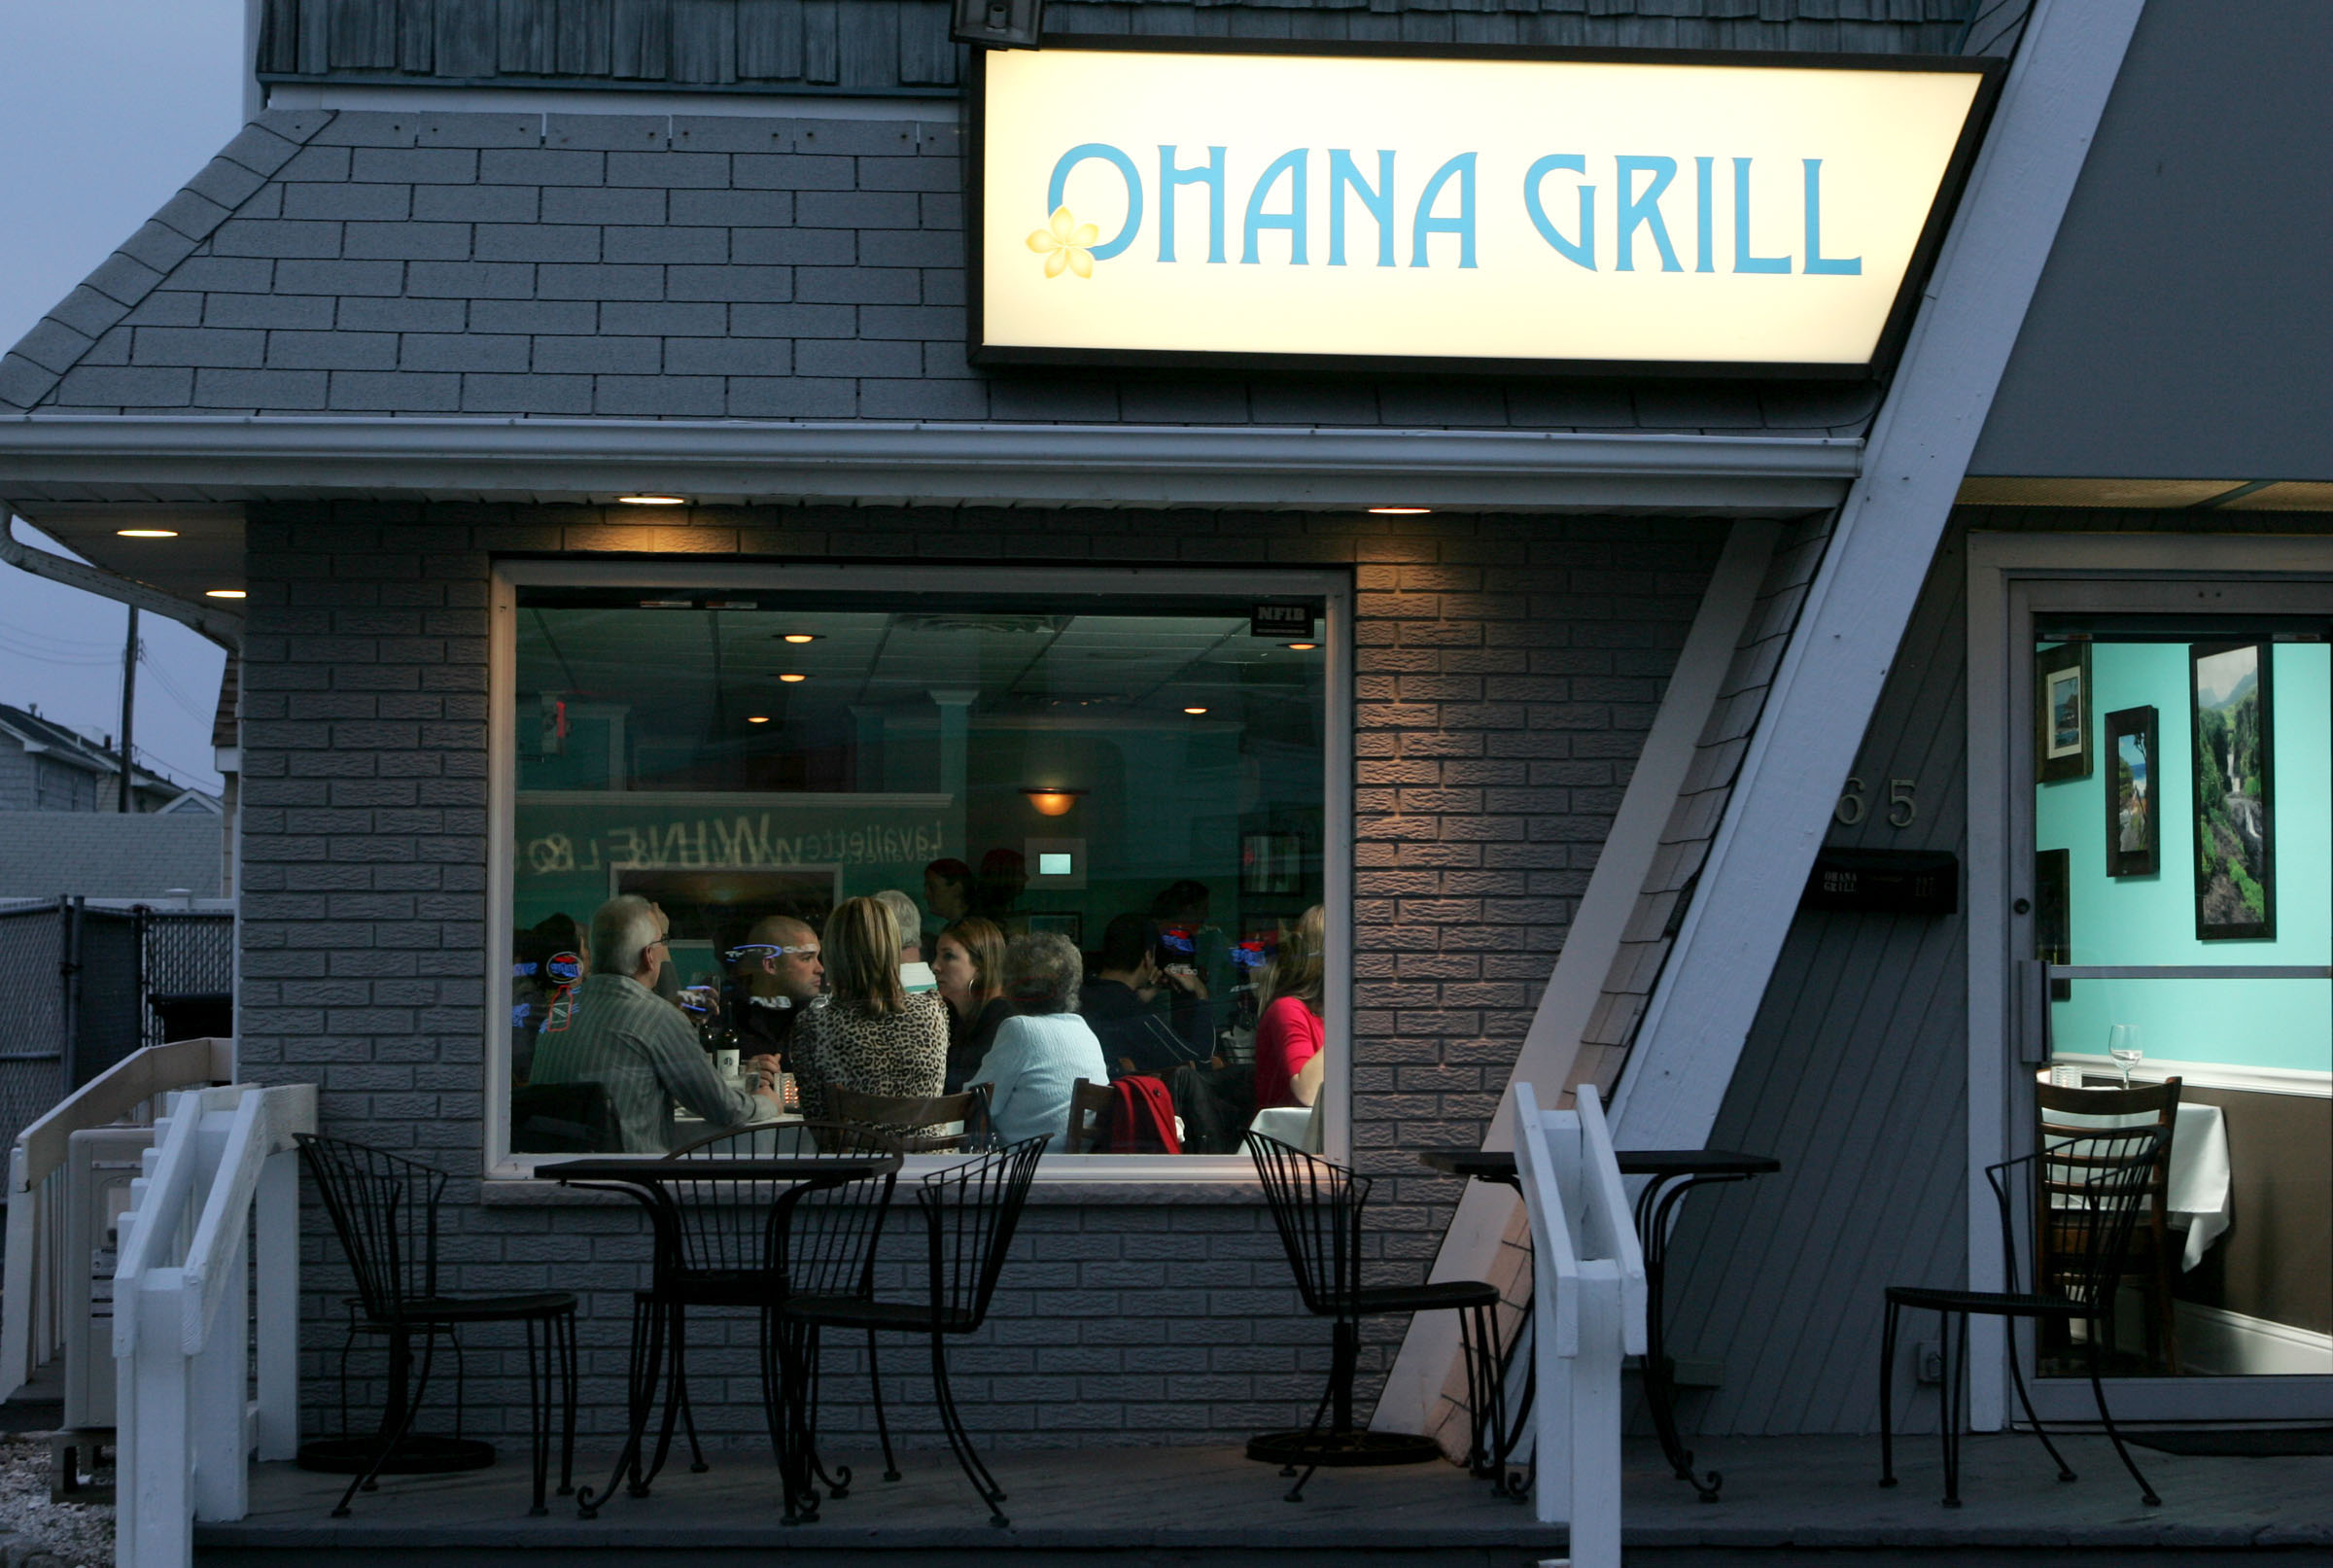 Exterior of The Ohana Grill in Lavallete on opening night, April 8, 2011.  PHOTO BY THOMAS P. COSTELLO